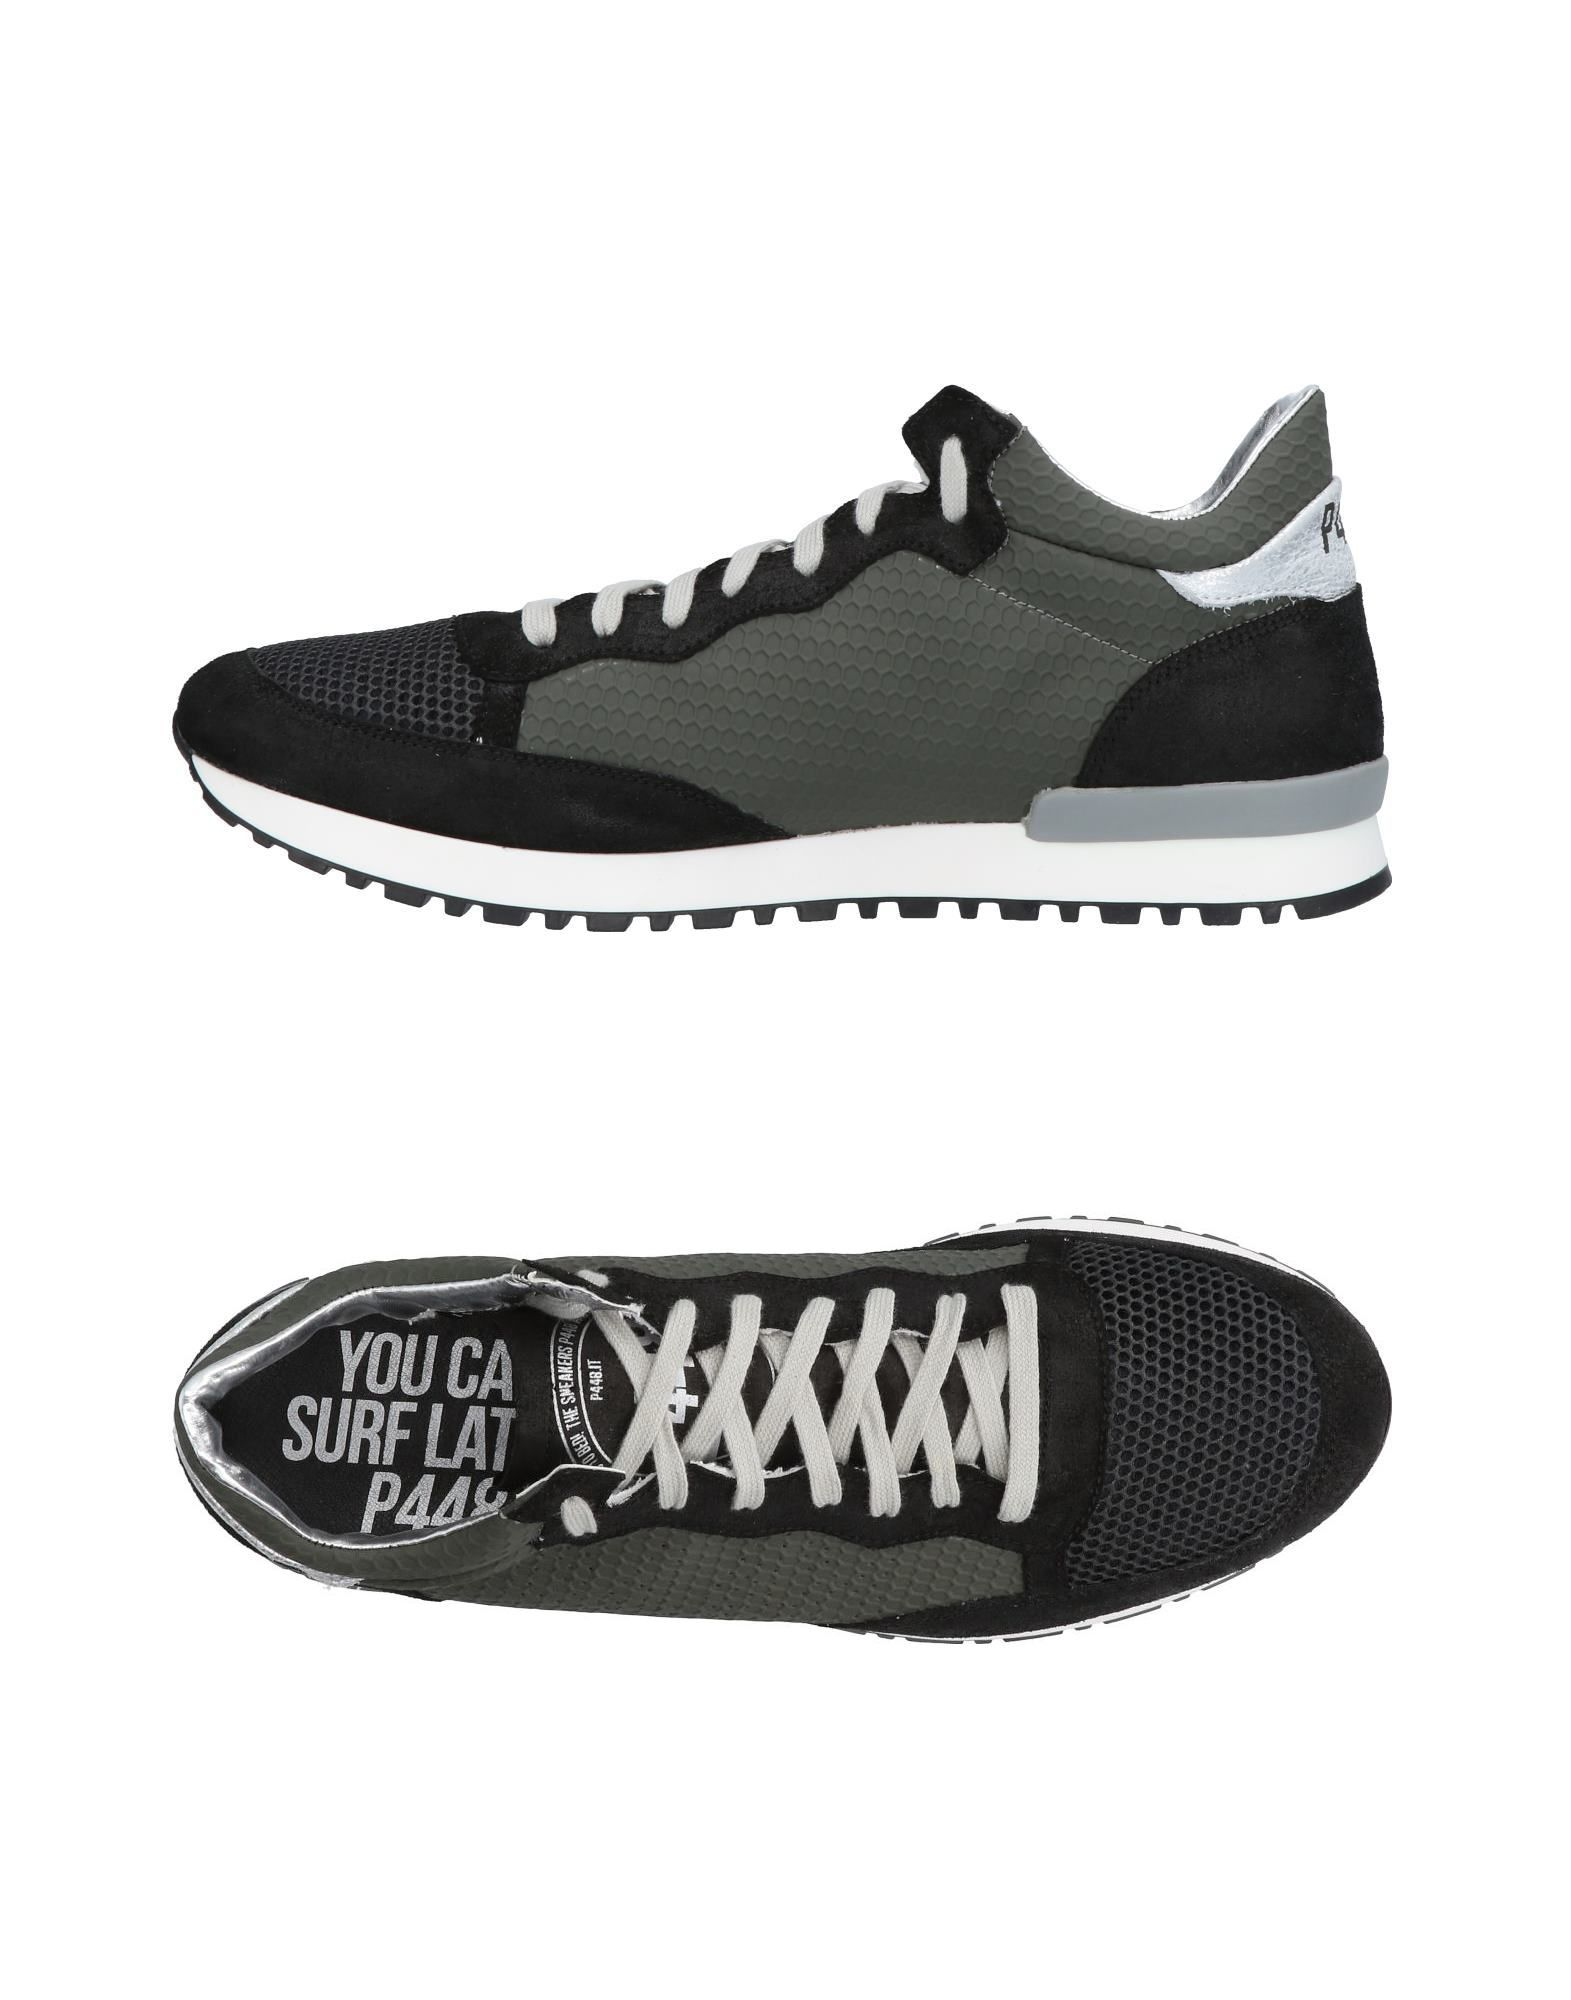 P448 Sneakers - on Men P448 Sneakers online on -  Australia - 11456833DX e62a61